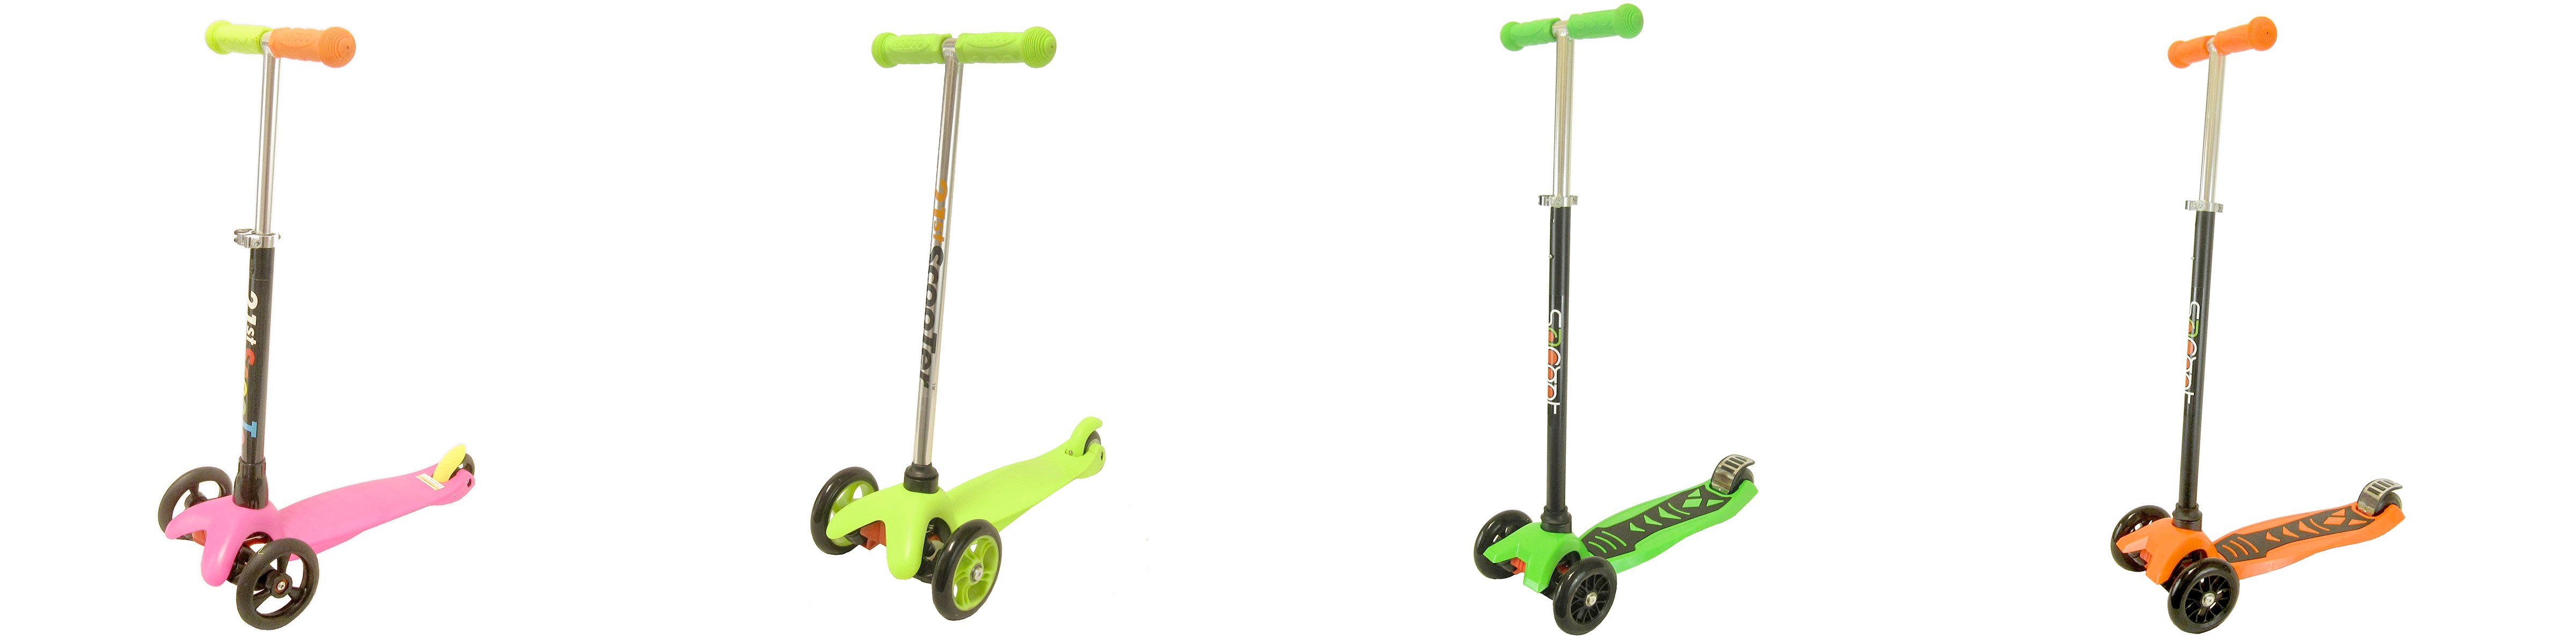 Recalled Scooters